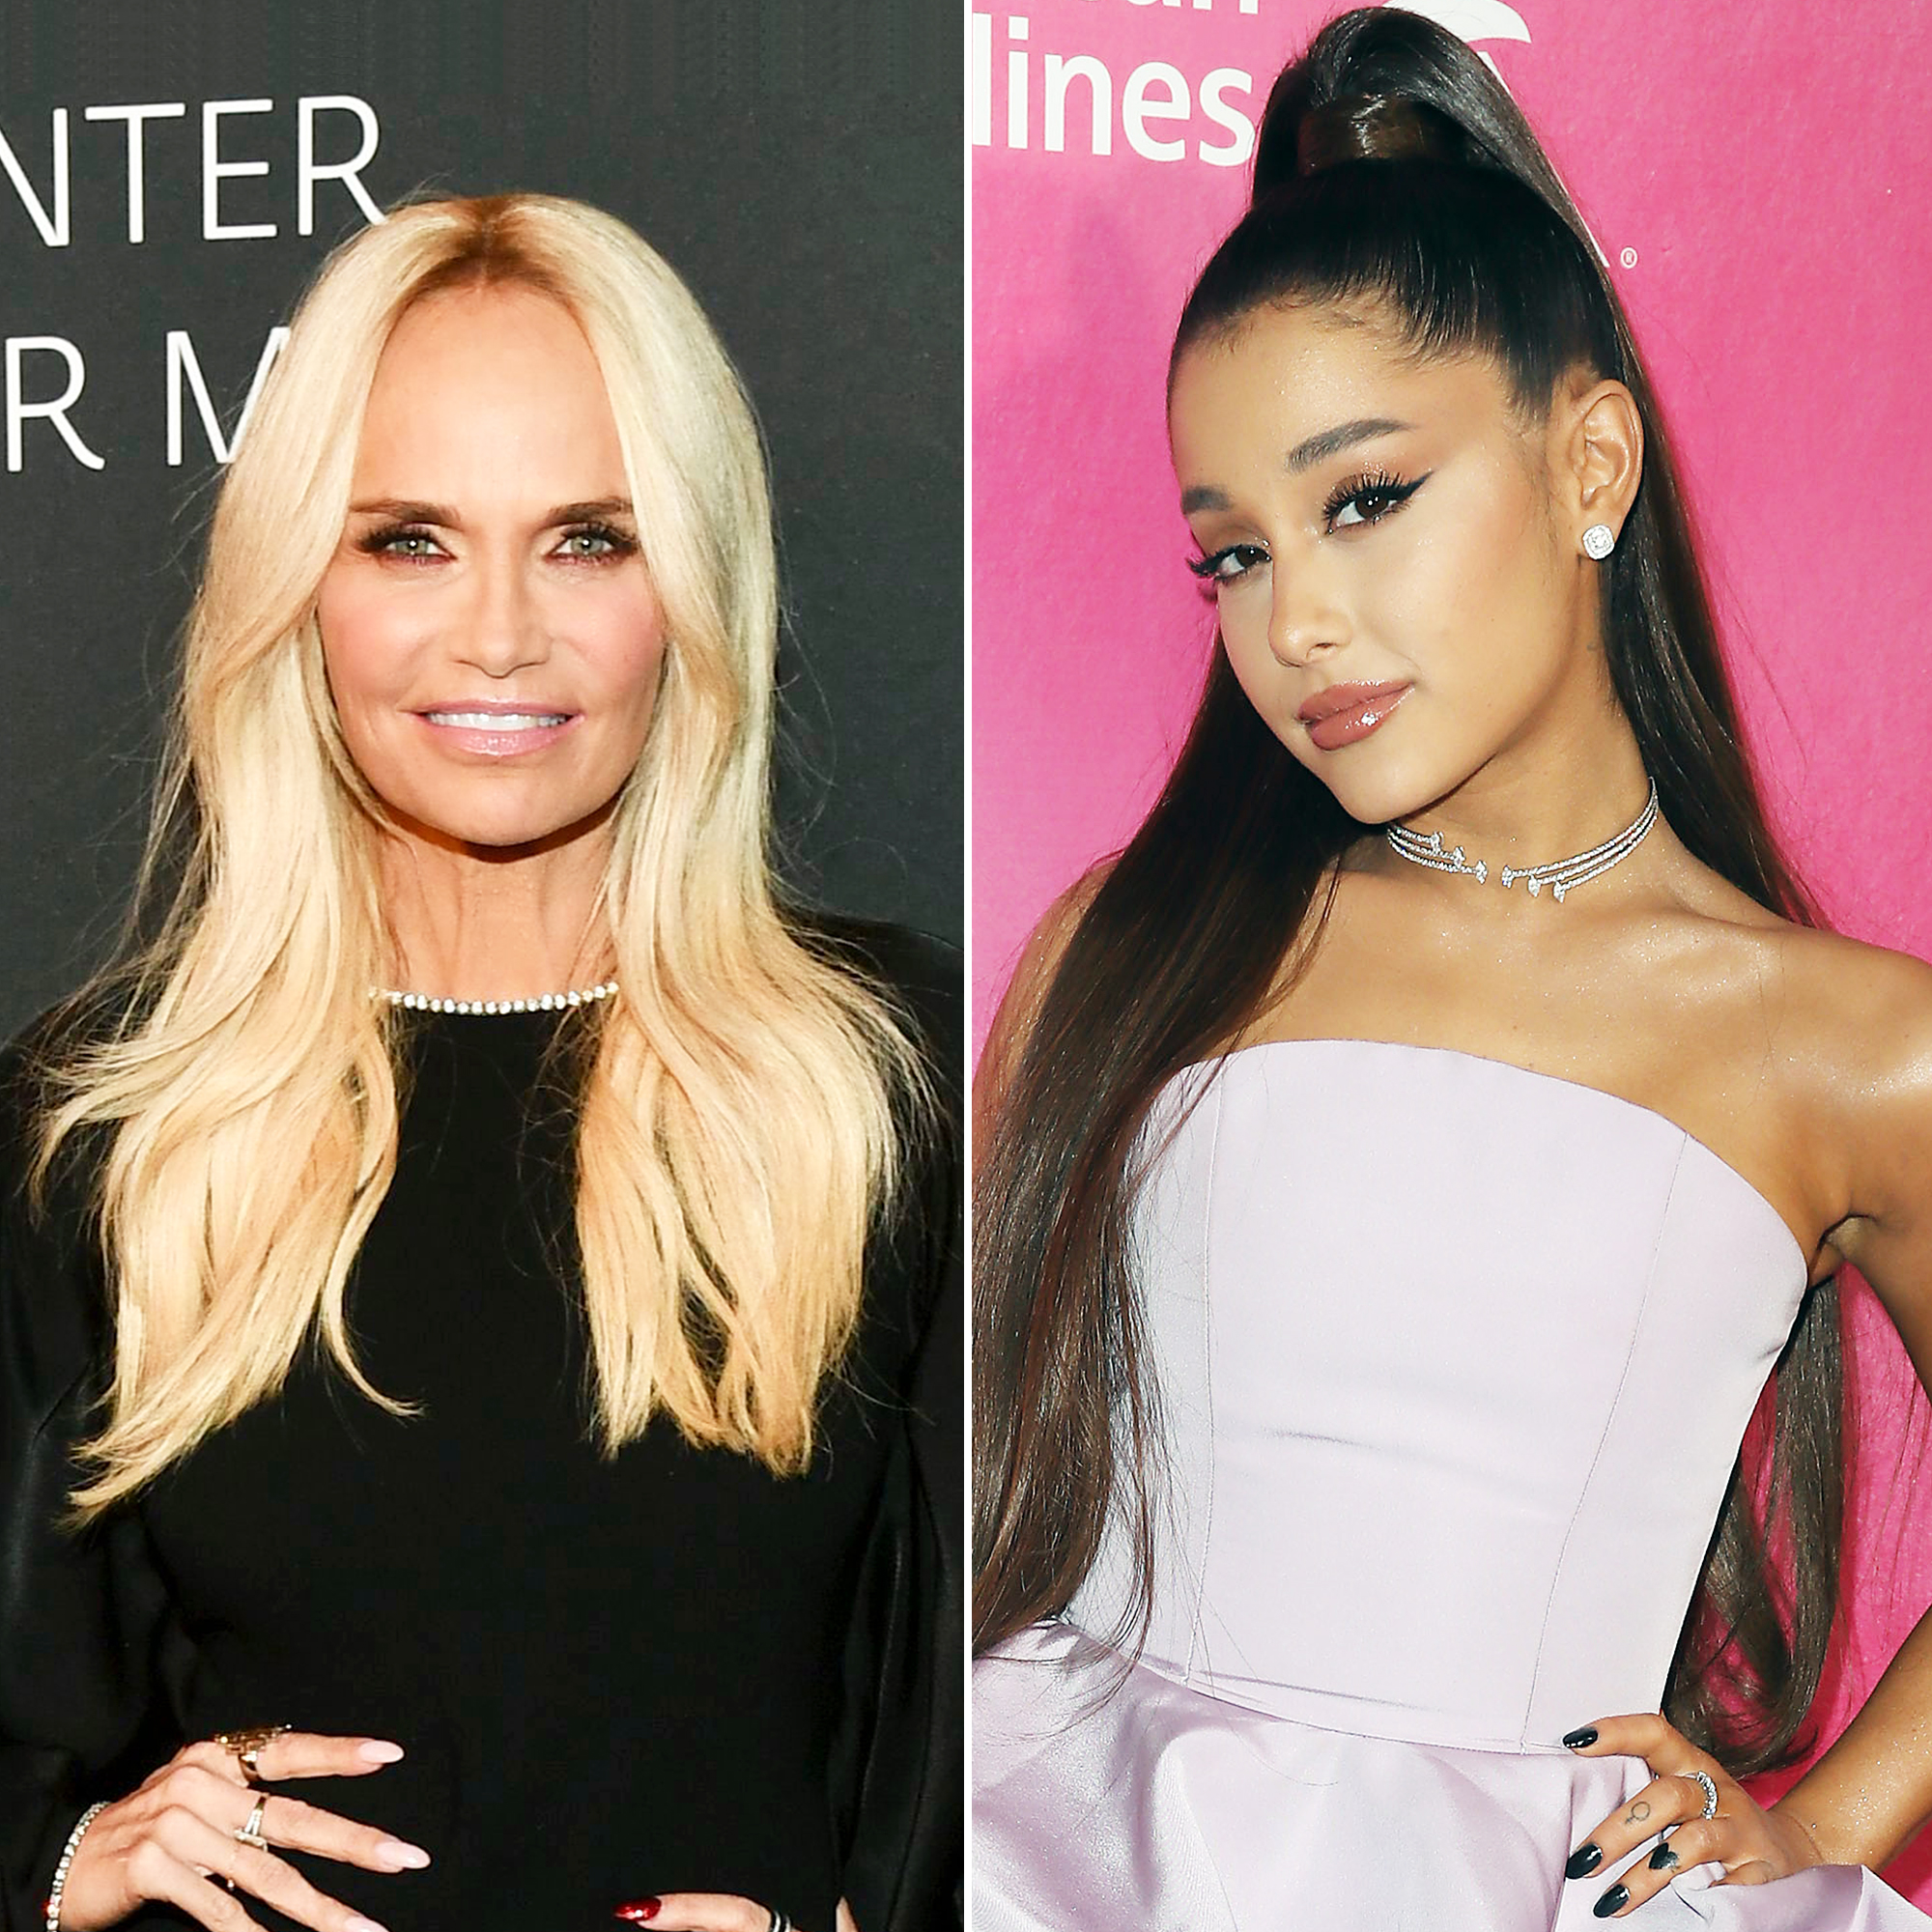 Kristen Chenoweth Plans to Double Date With Ariana Grande When Its Safe